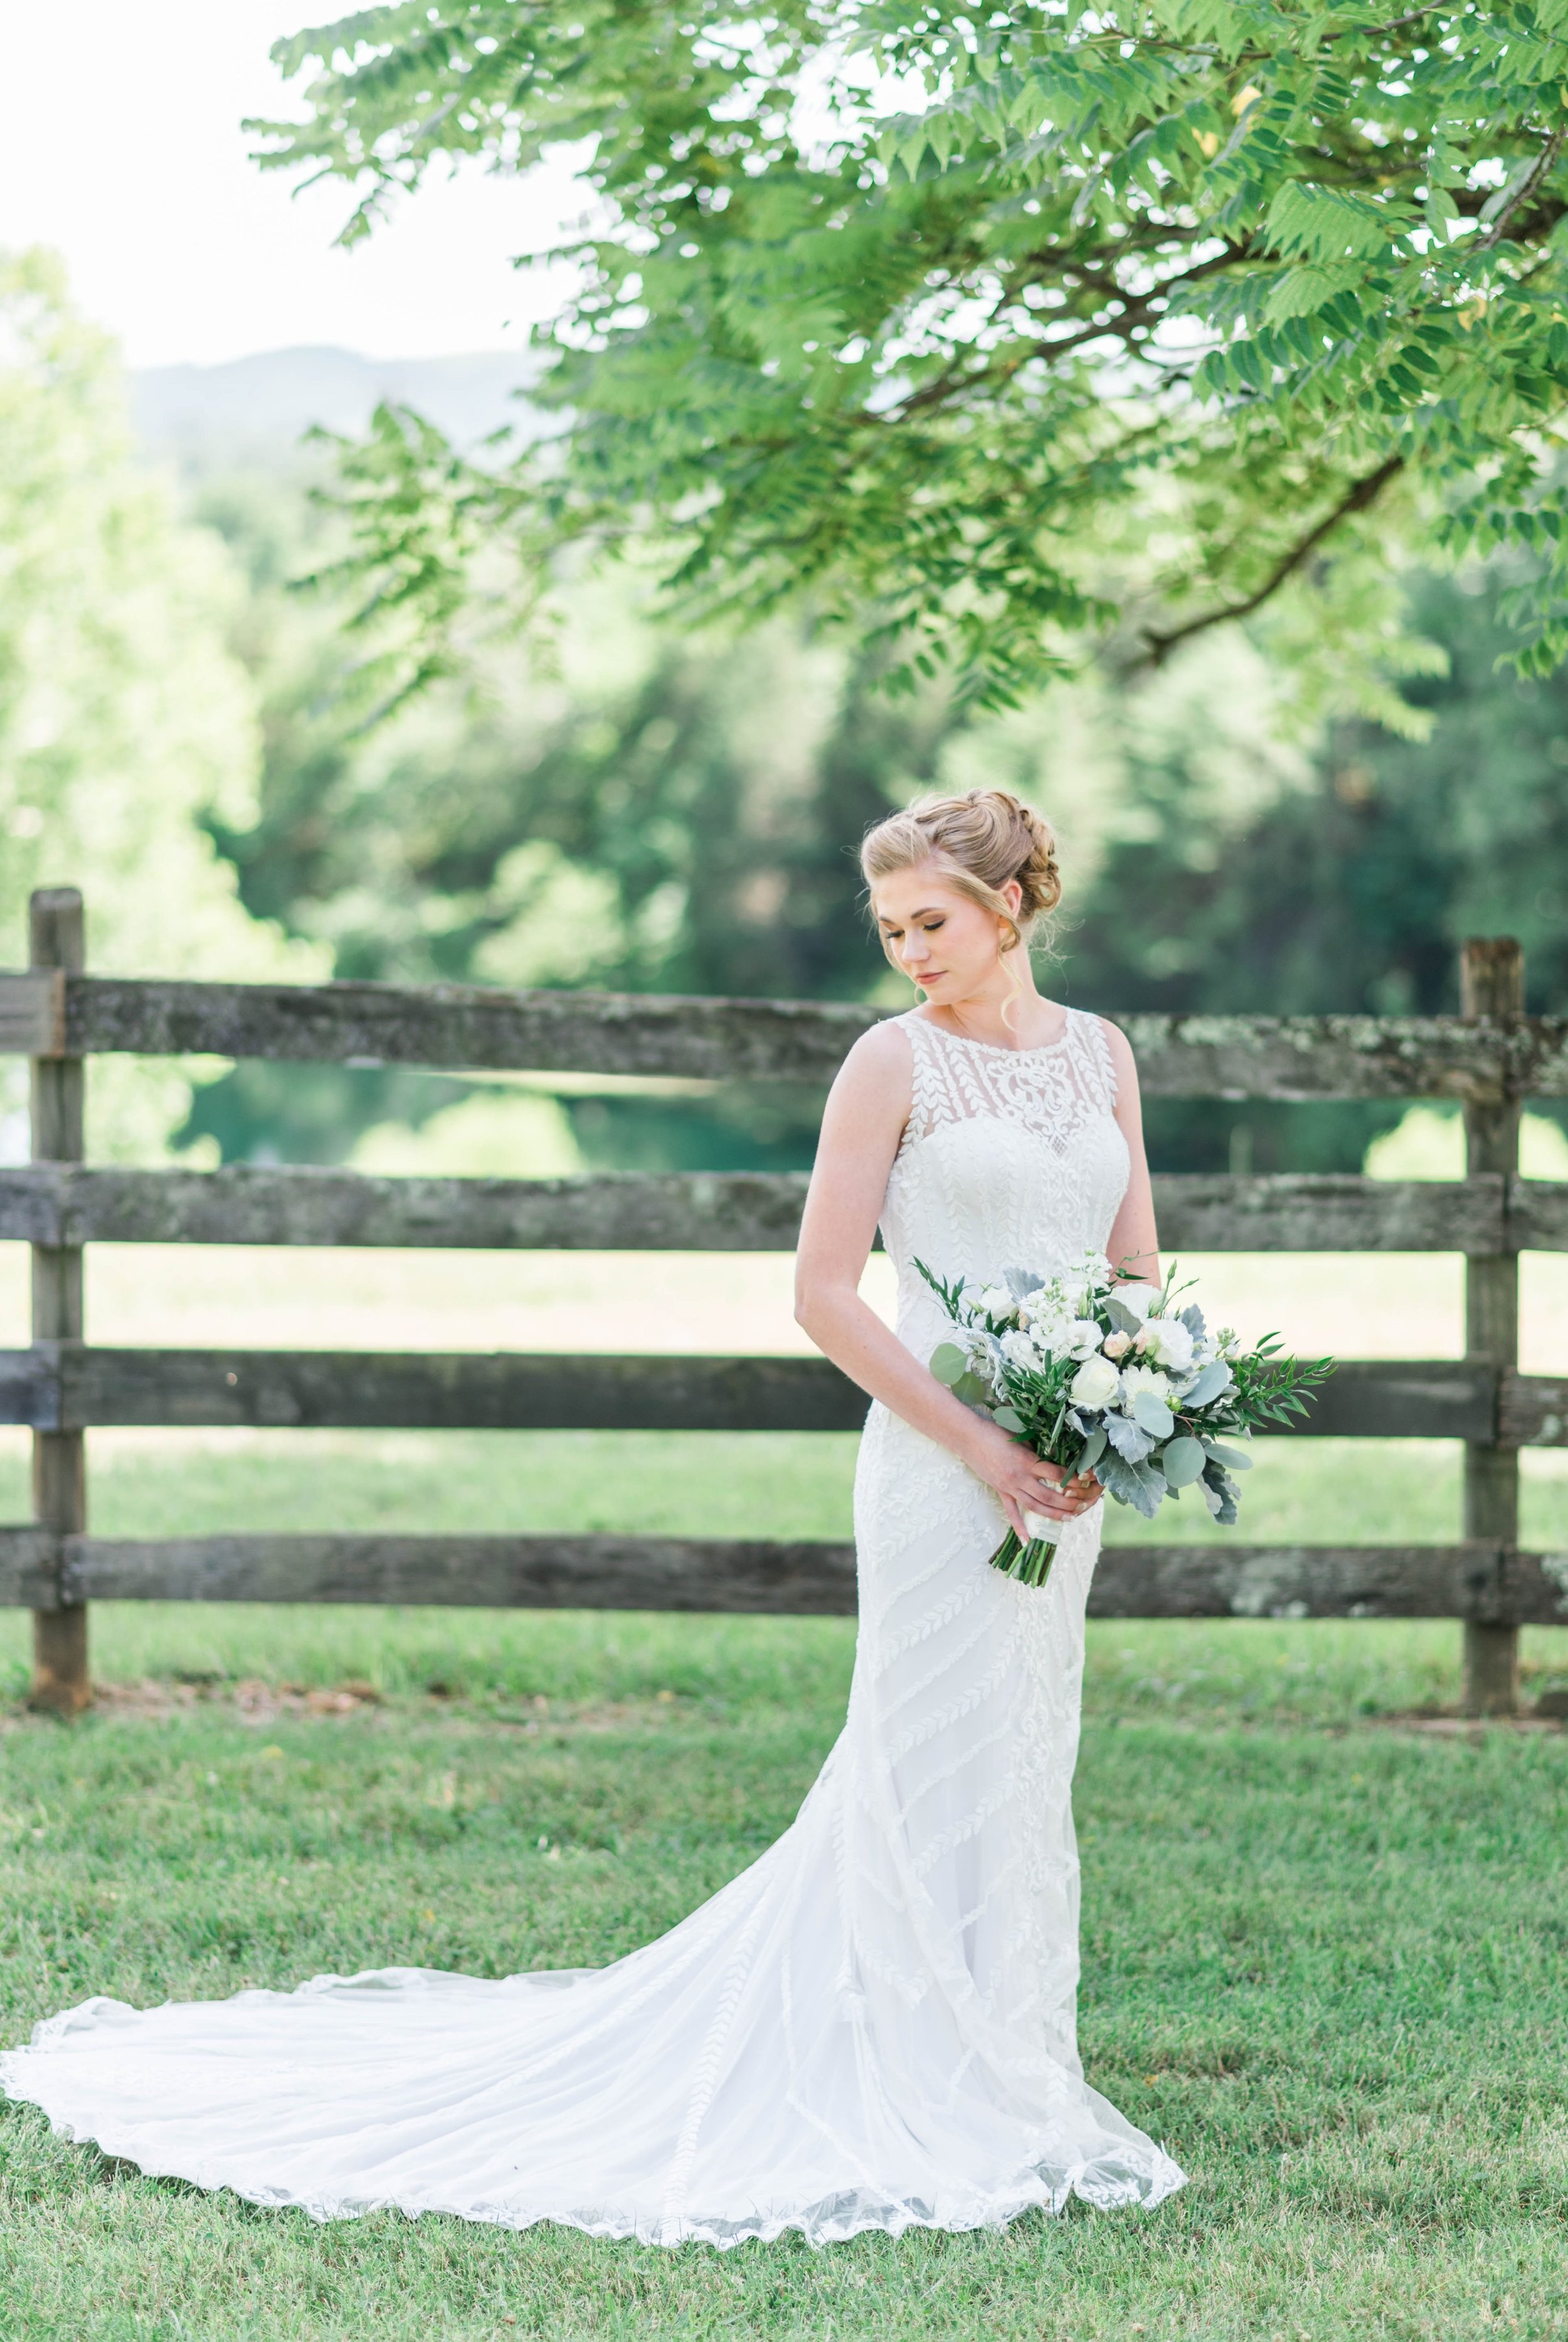 SorellaFarms_VirginiaWeddingPhotographer_BarnWedding_Lynchburgweddingphotographer_DanielleTyler 39.jpg